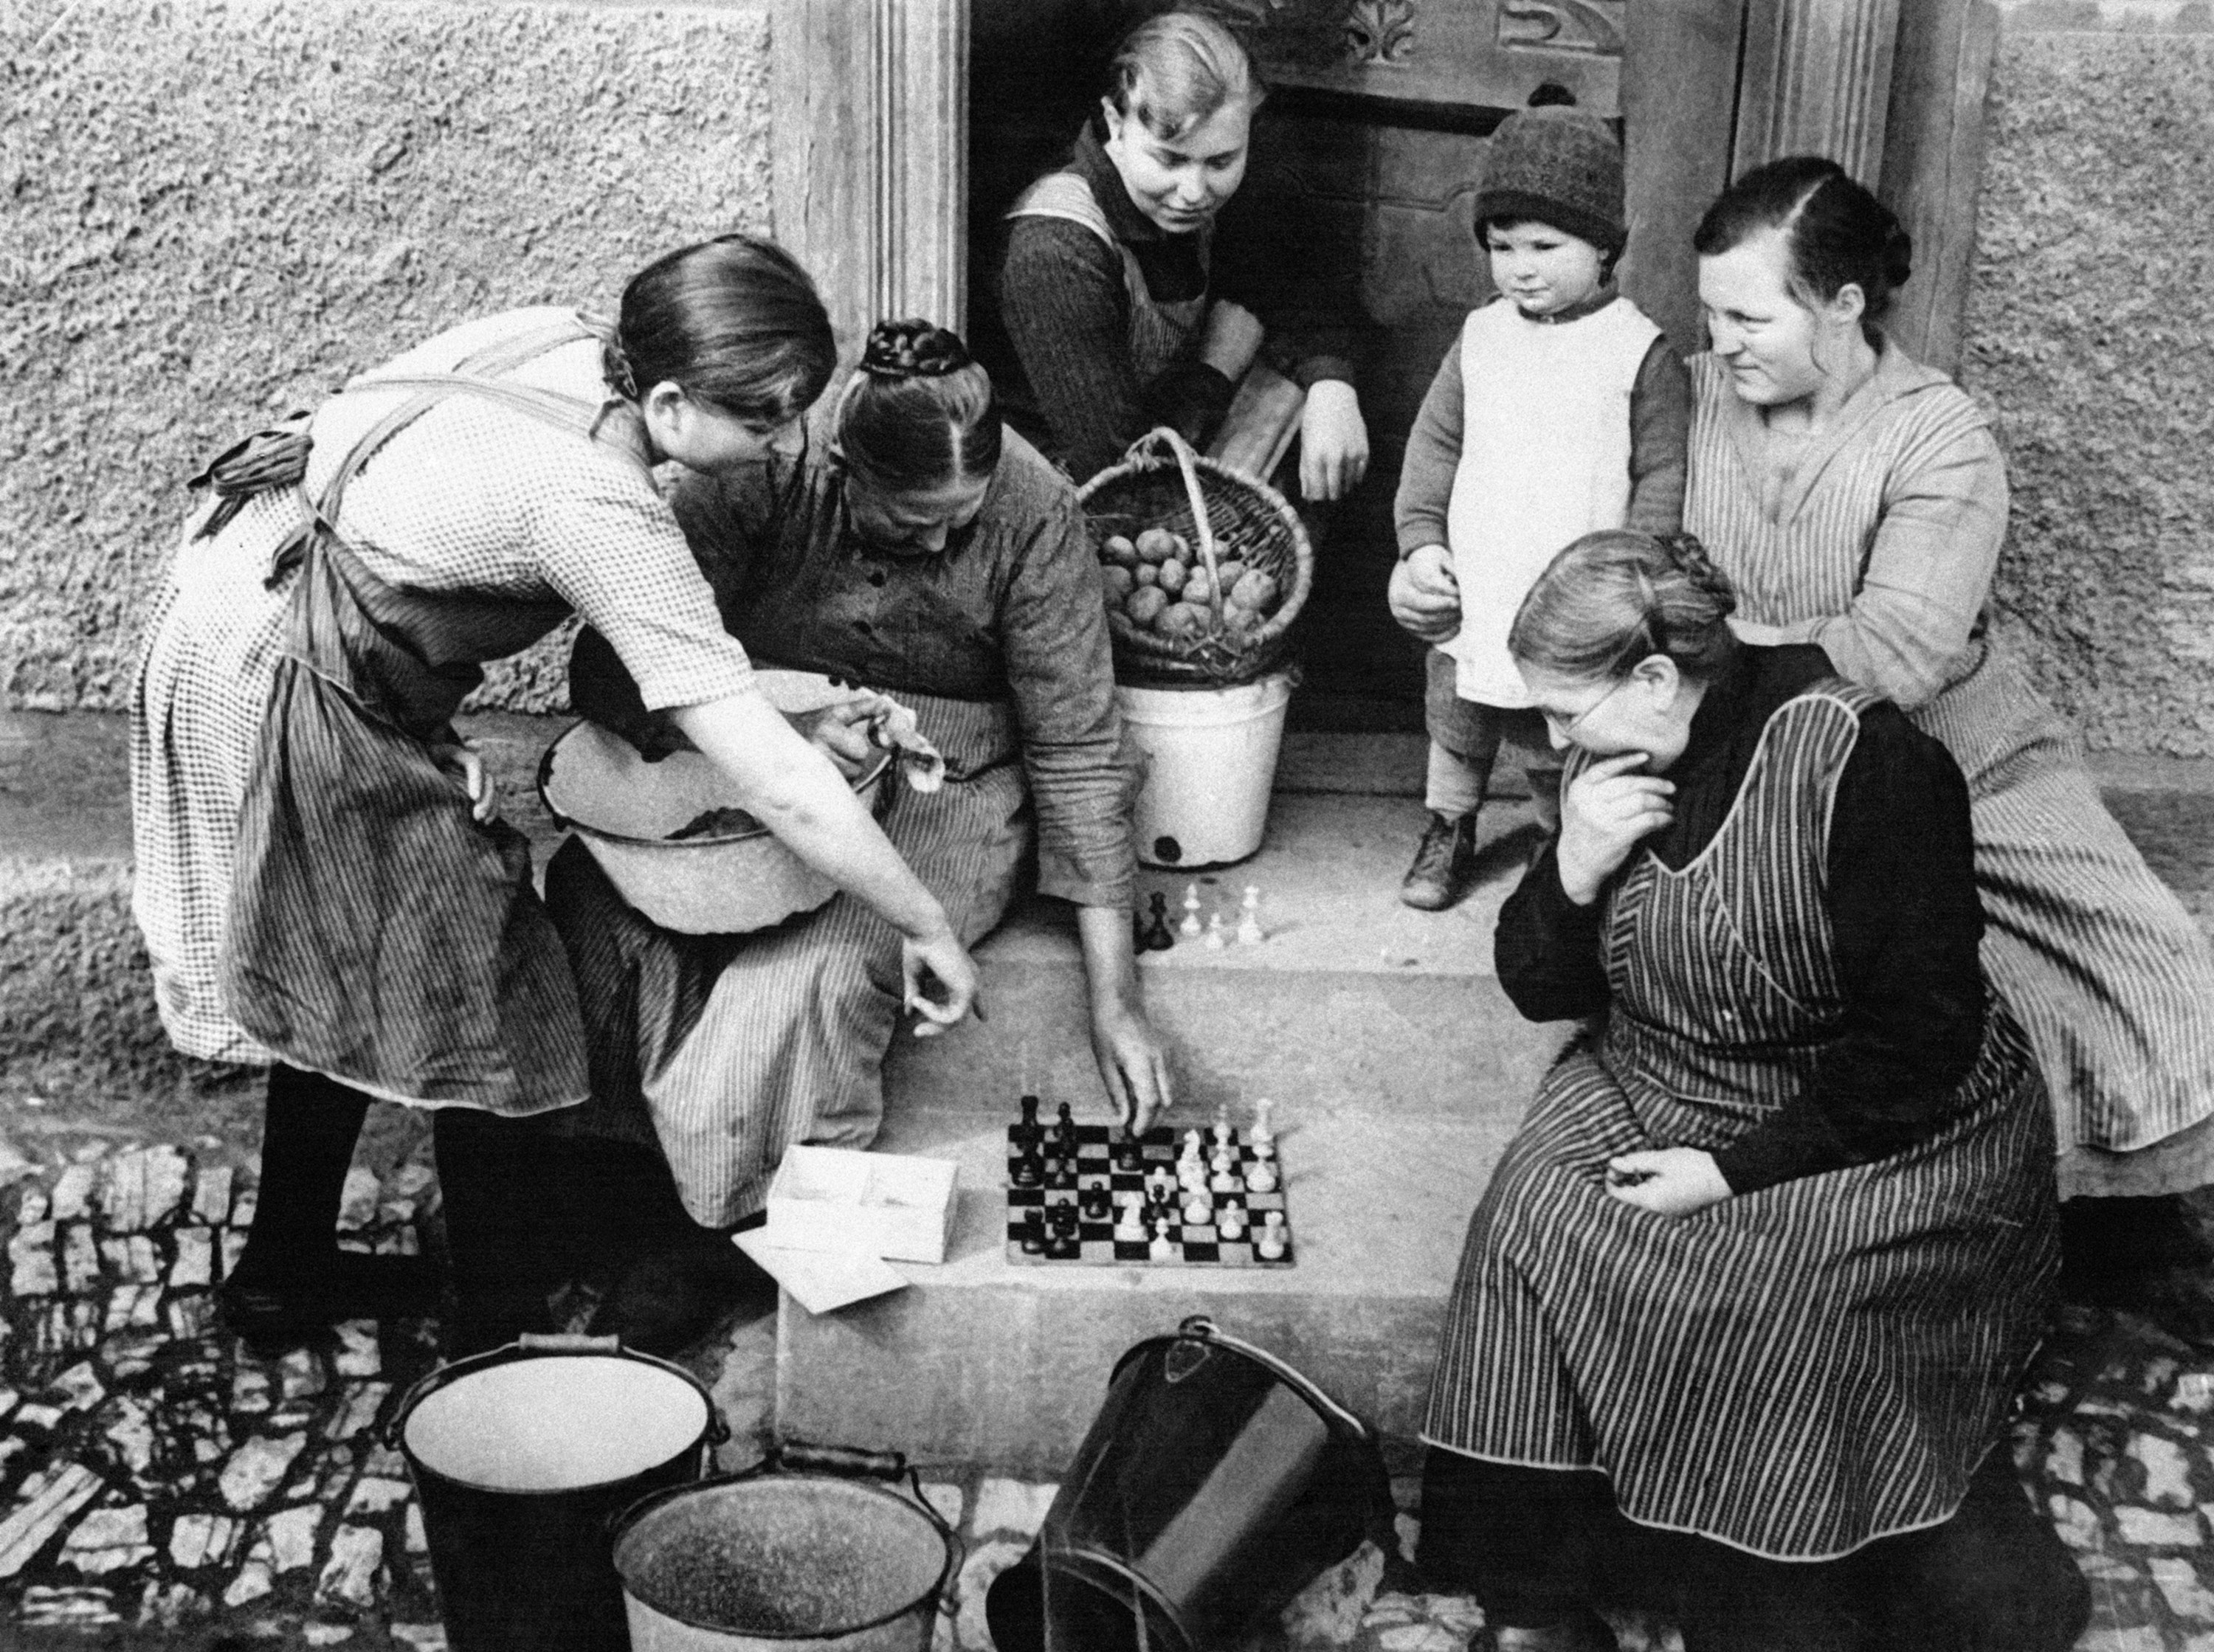 Five women and a toddler, all in aprons and old-fashioned clothing, huddle around a chessboard on a stoop